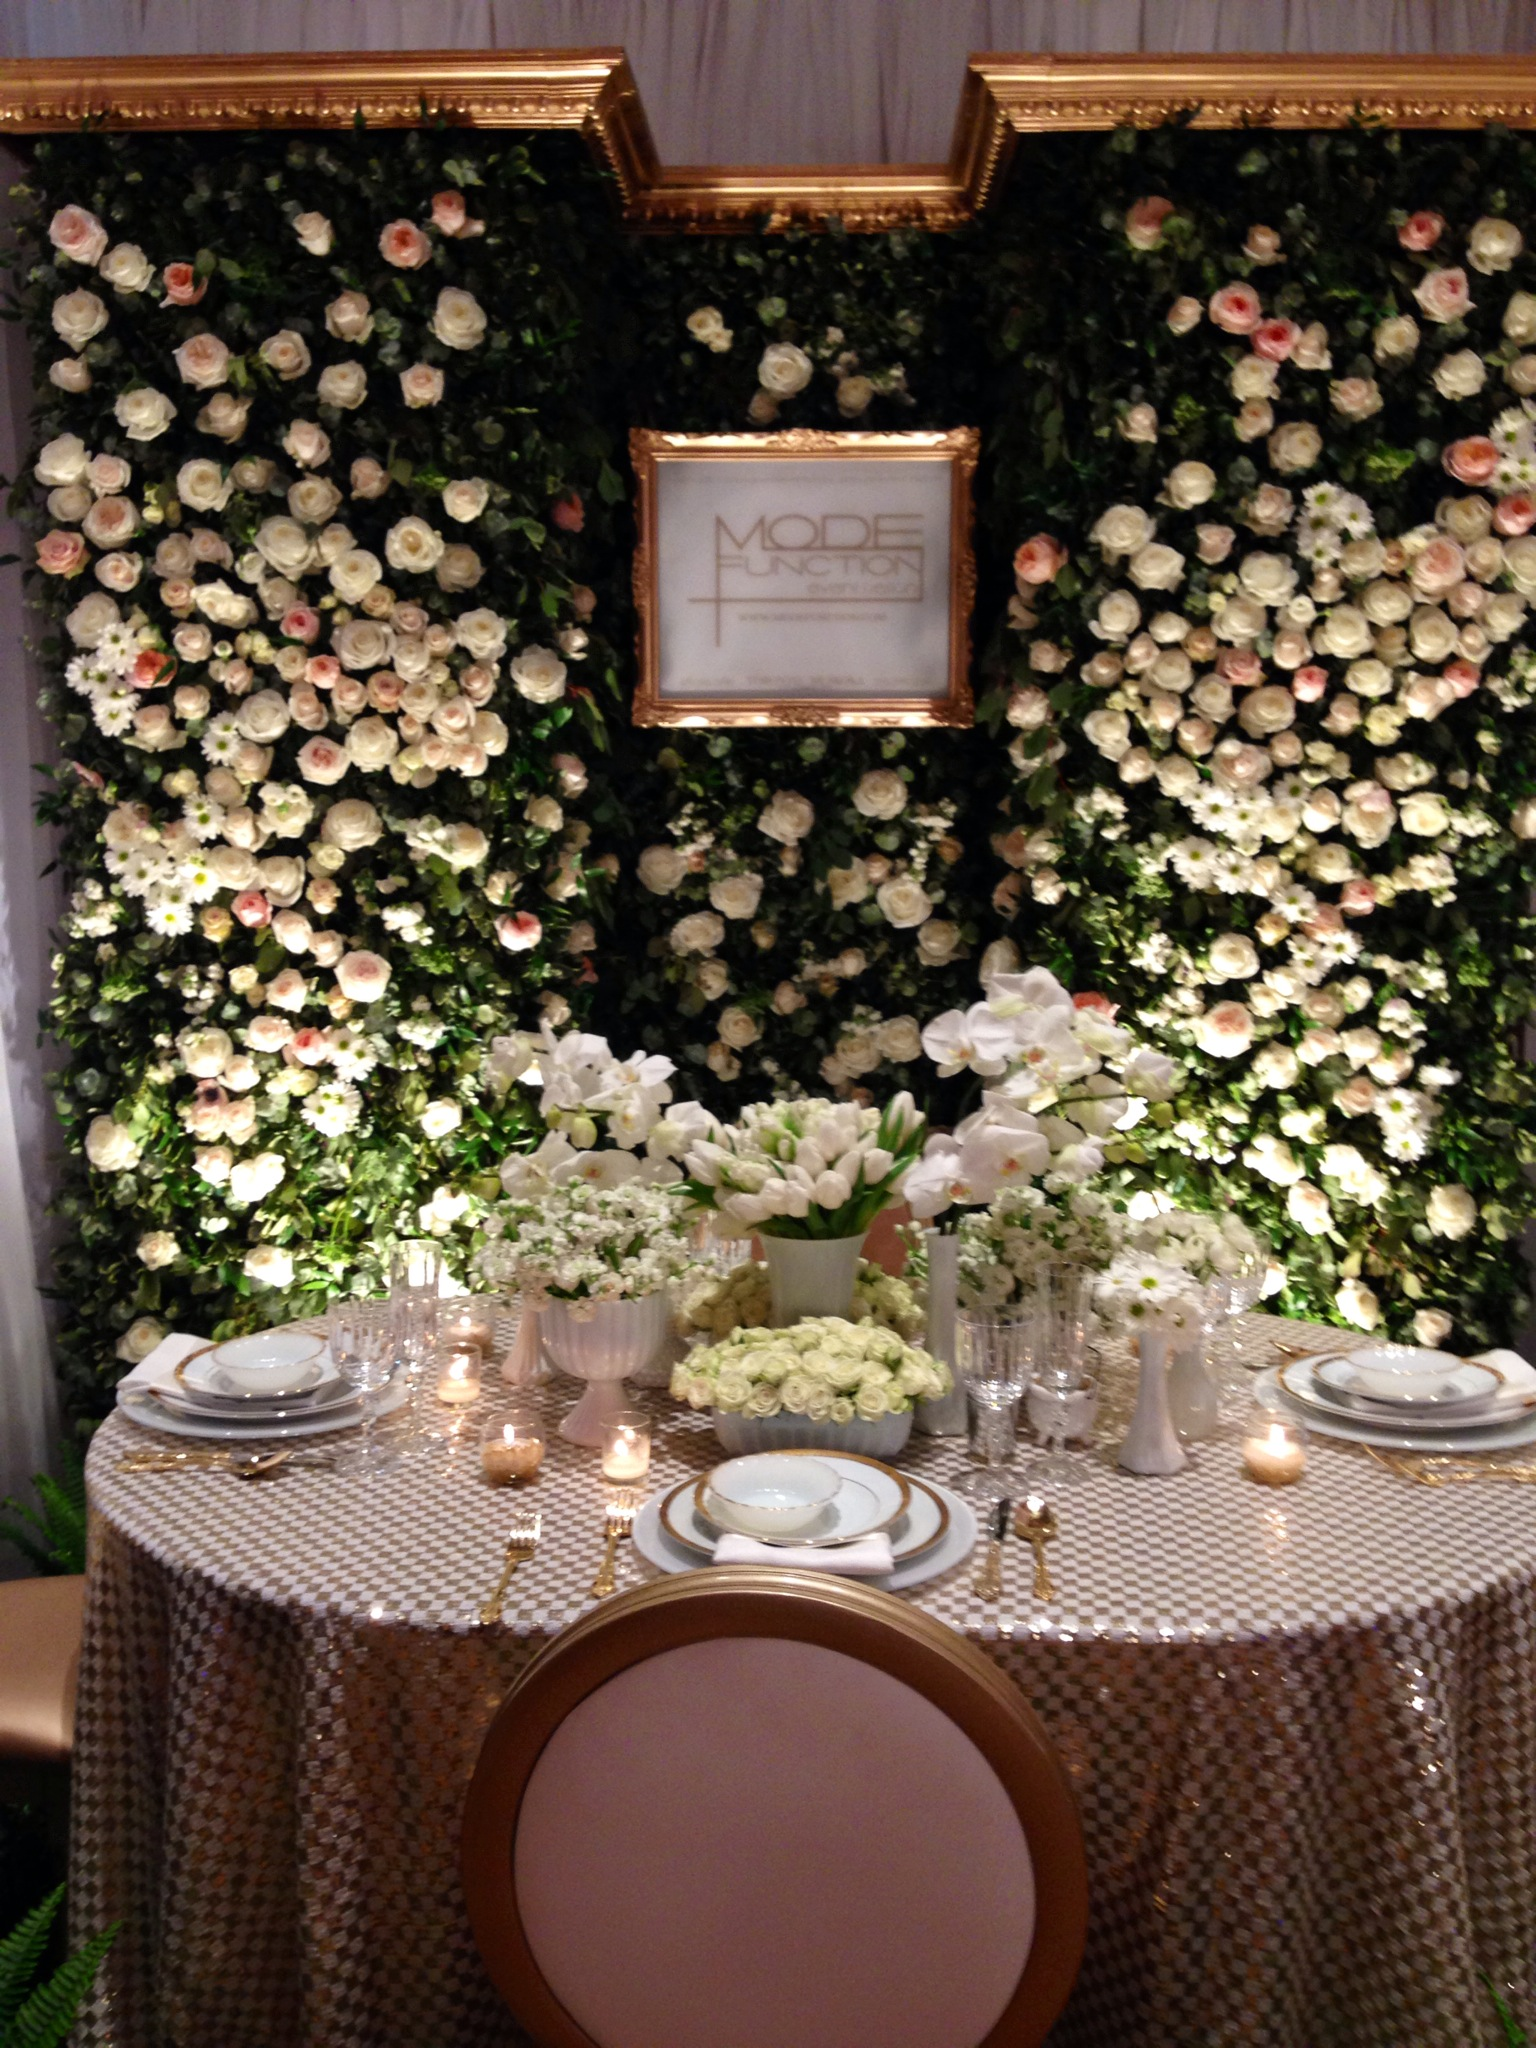 weddingflowers-modefunction-wedluxeshow-torontoweddingplanner